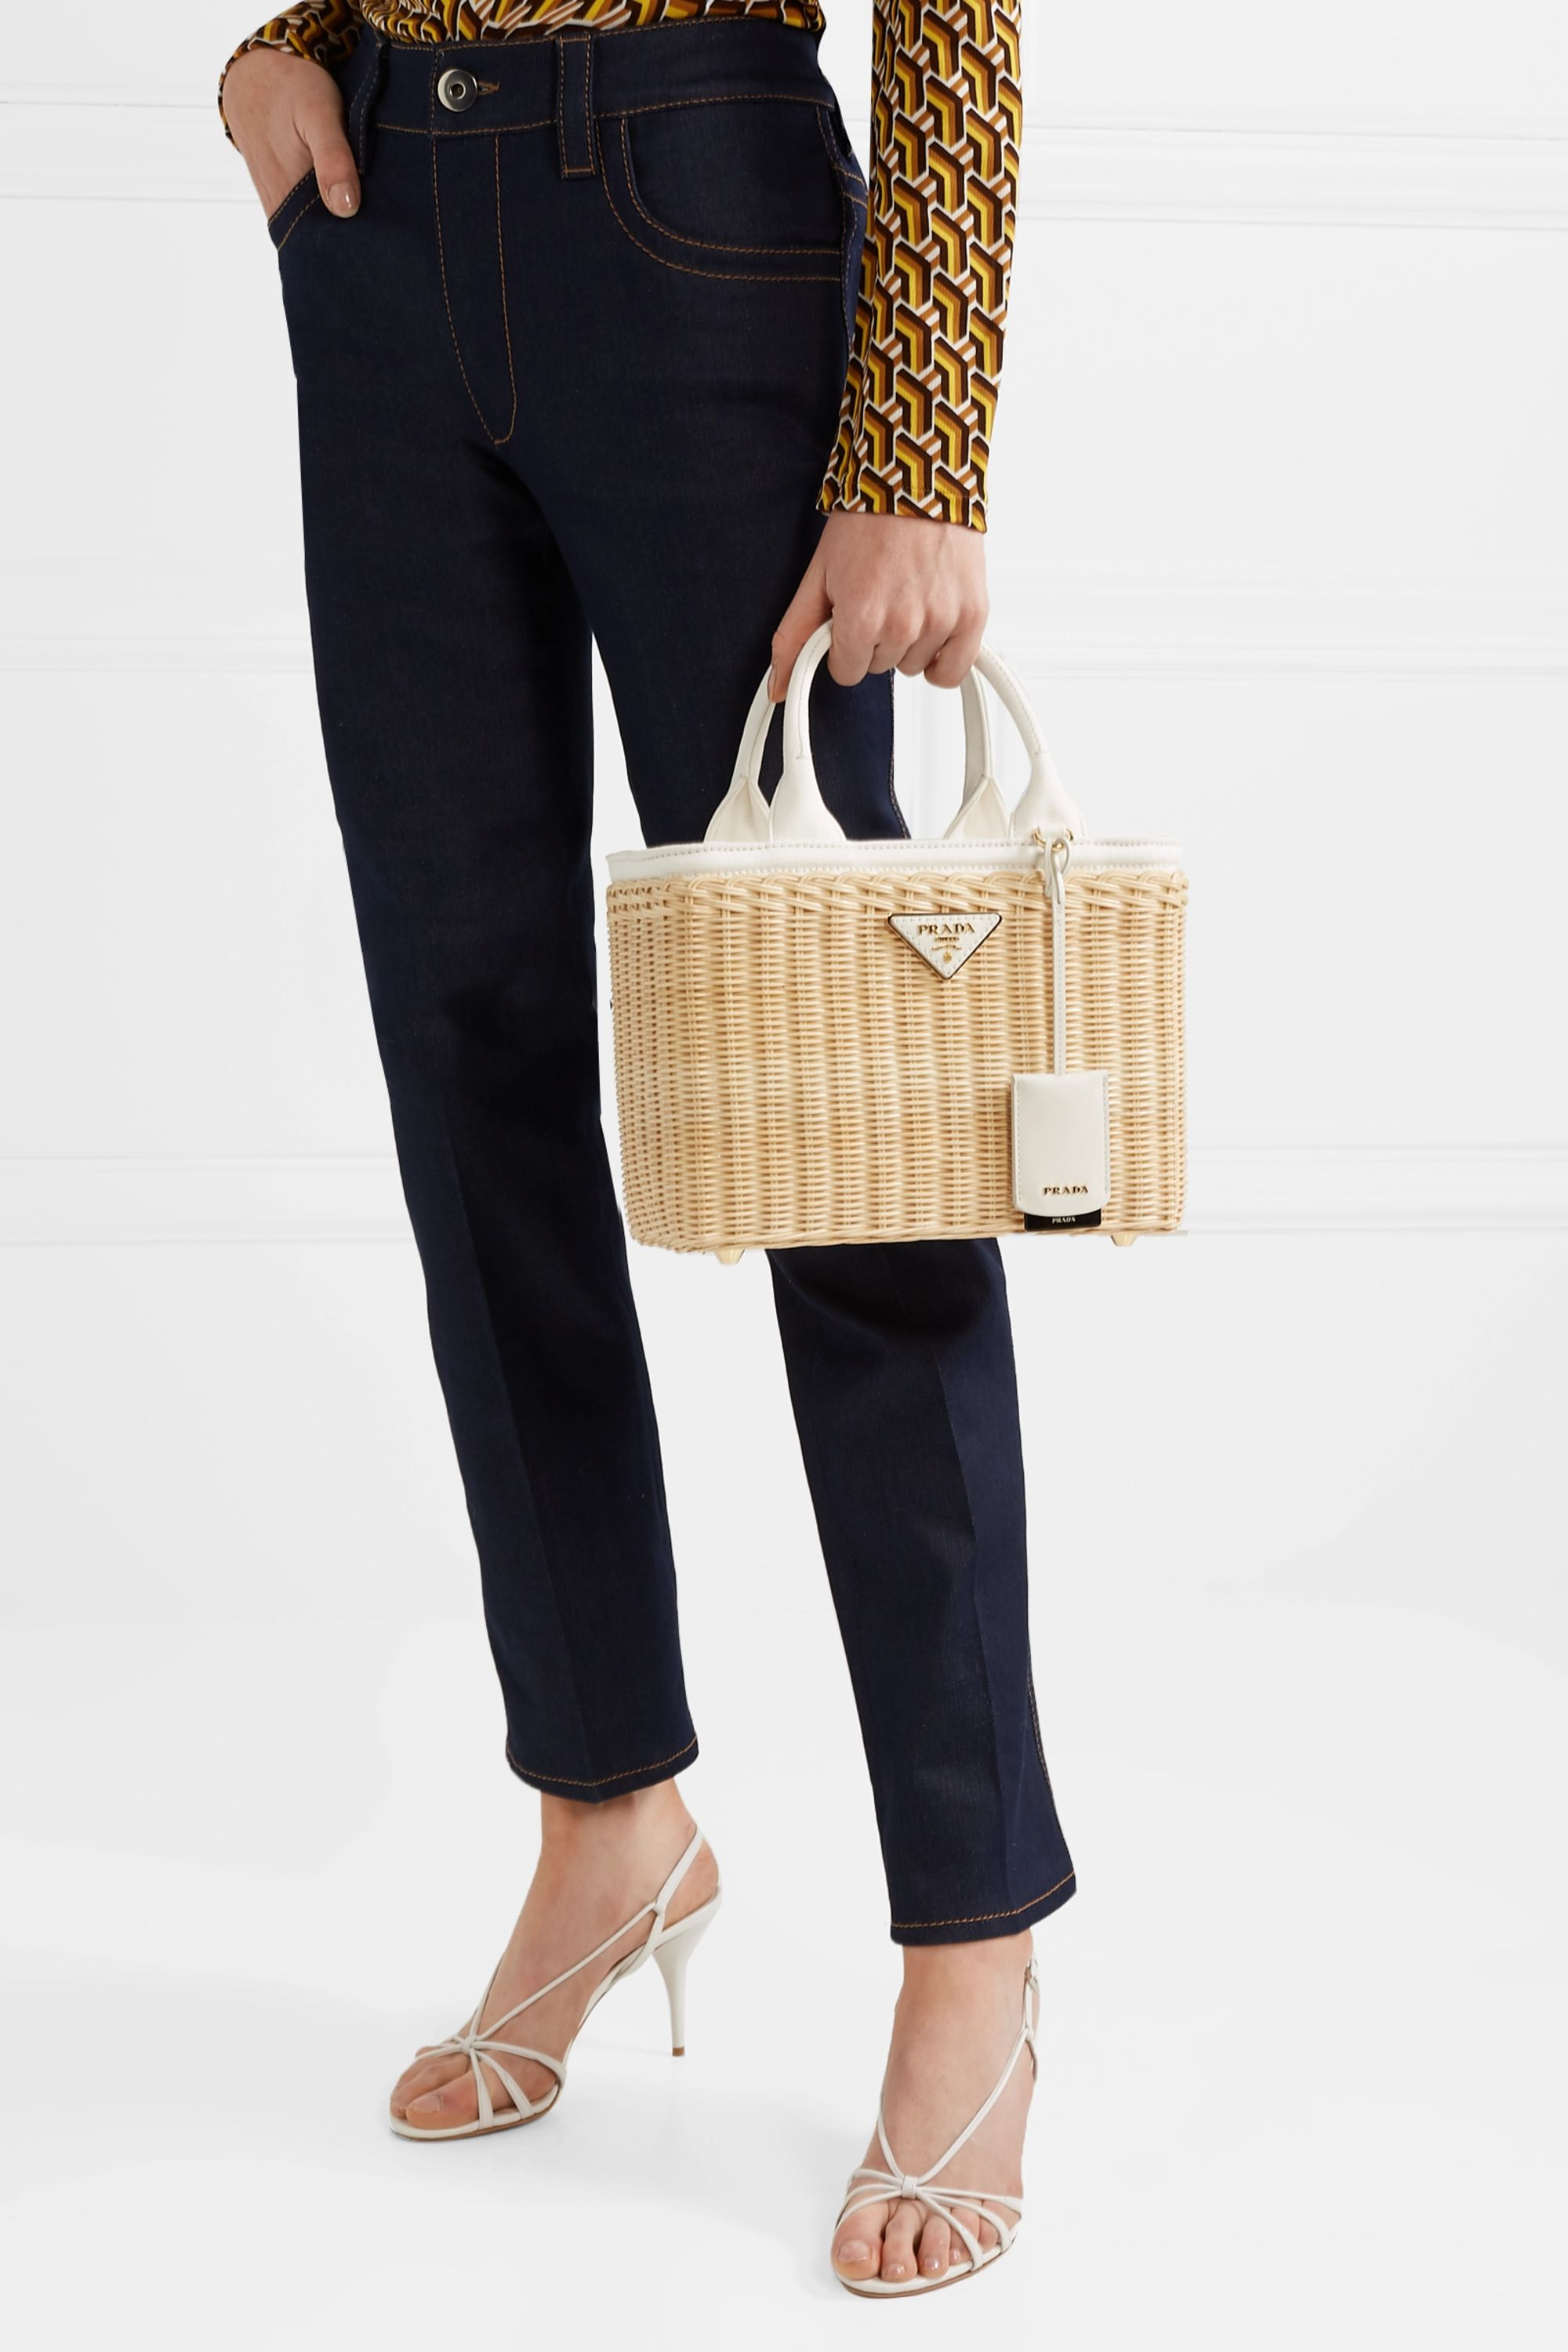 Prada Giardiniera leather-trimmed canvas wicker tote